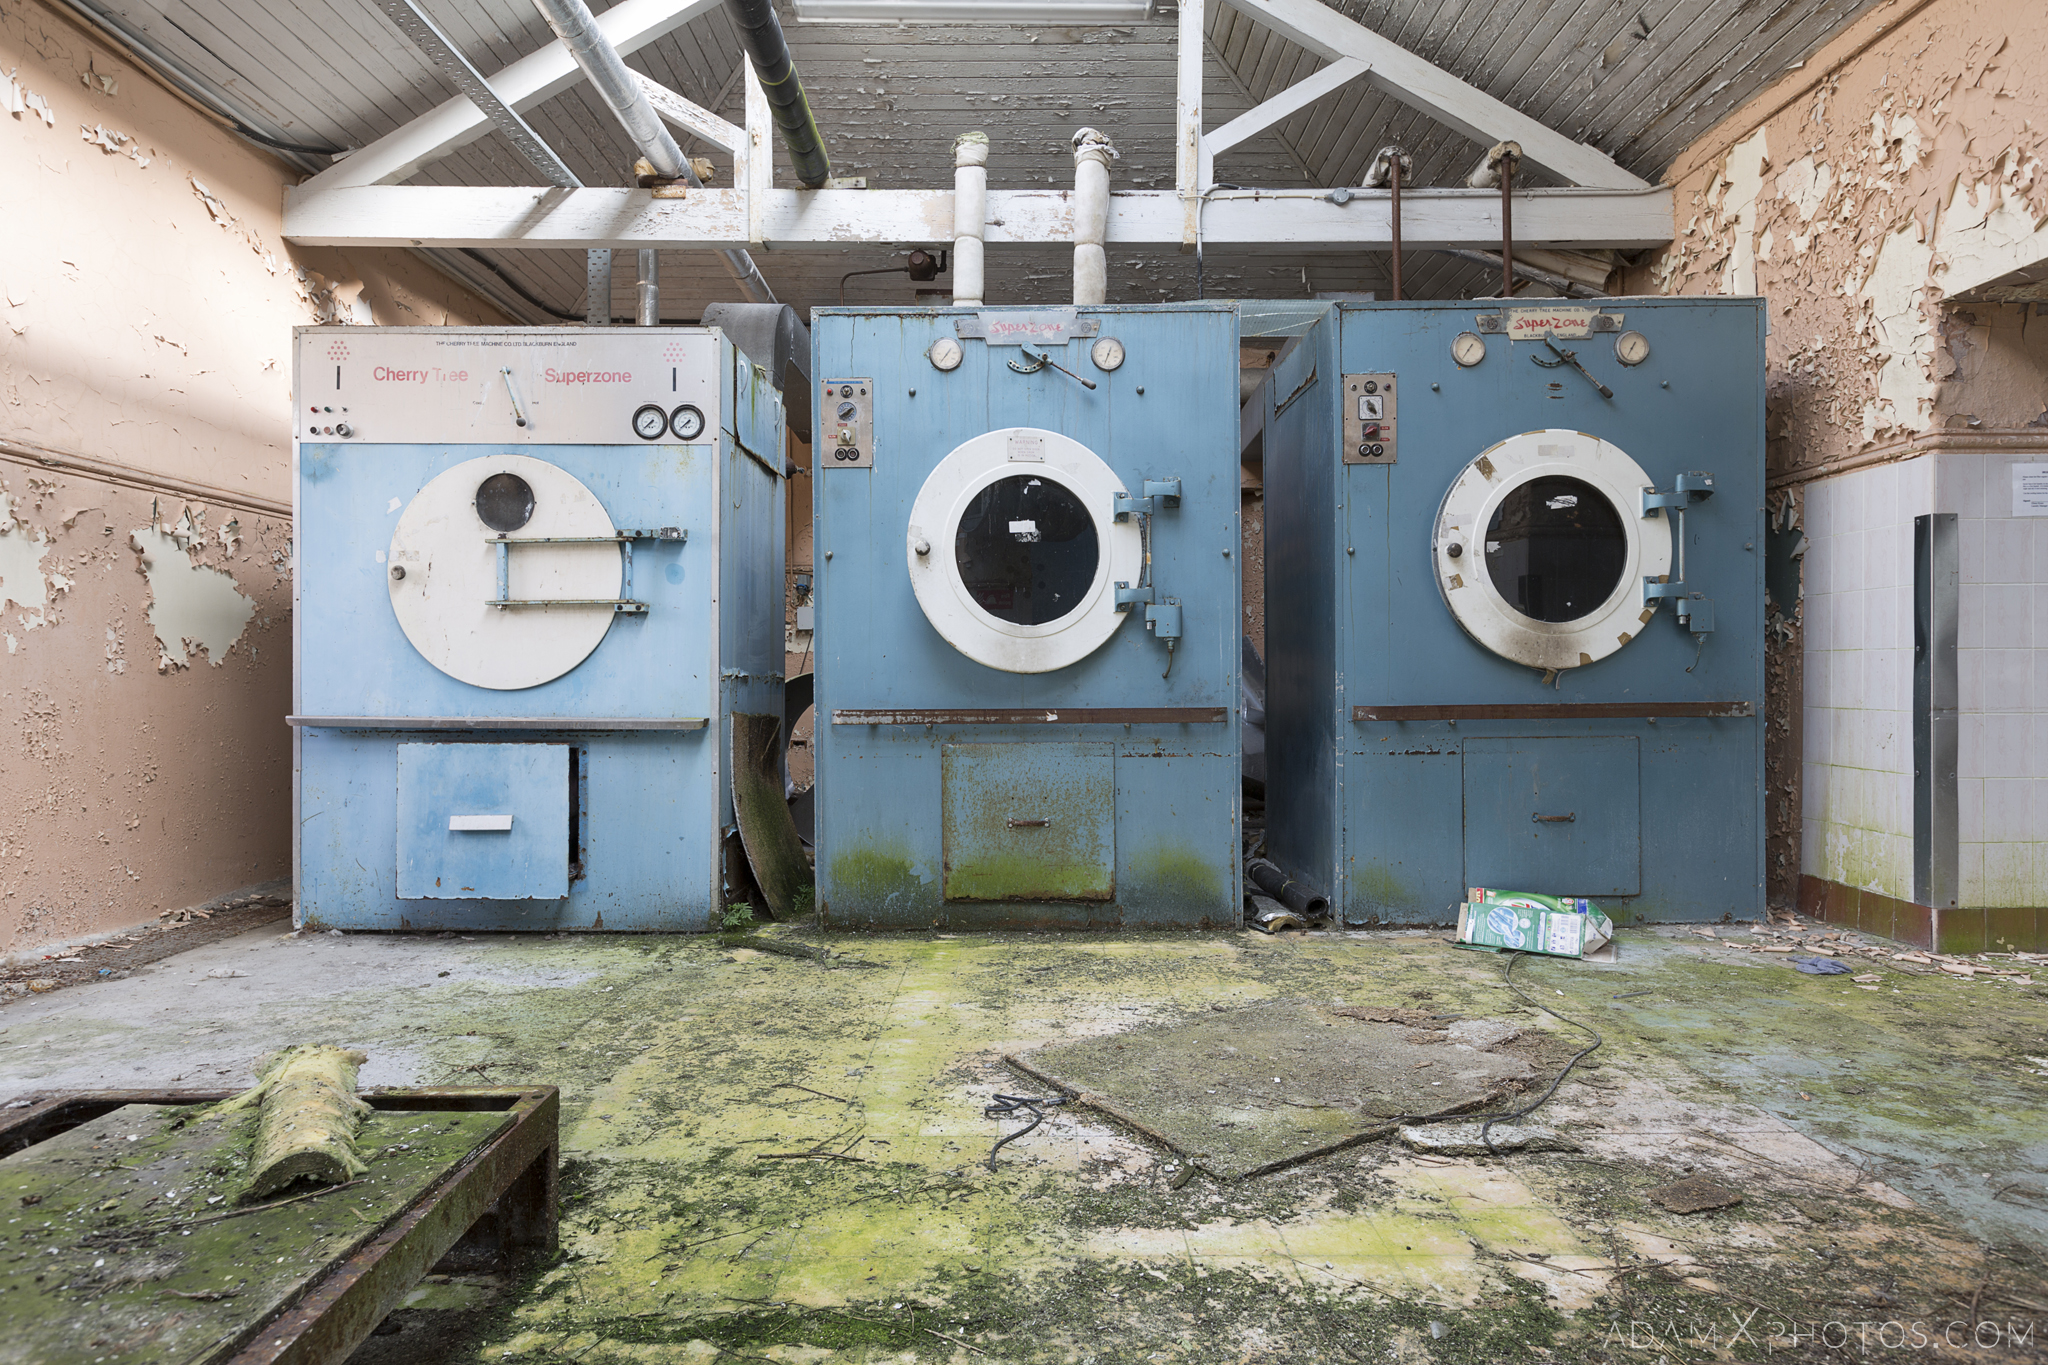 washing machines laundry Connacht District Lunatic Asylum St Brigid's Hospital Adam X Urbex Urban Exploration Ireland Ballinasloe Access 2017 Abandoned decay lost forgotten derelict location creepy haunting eerie